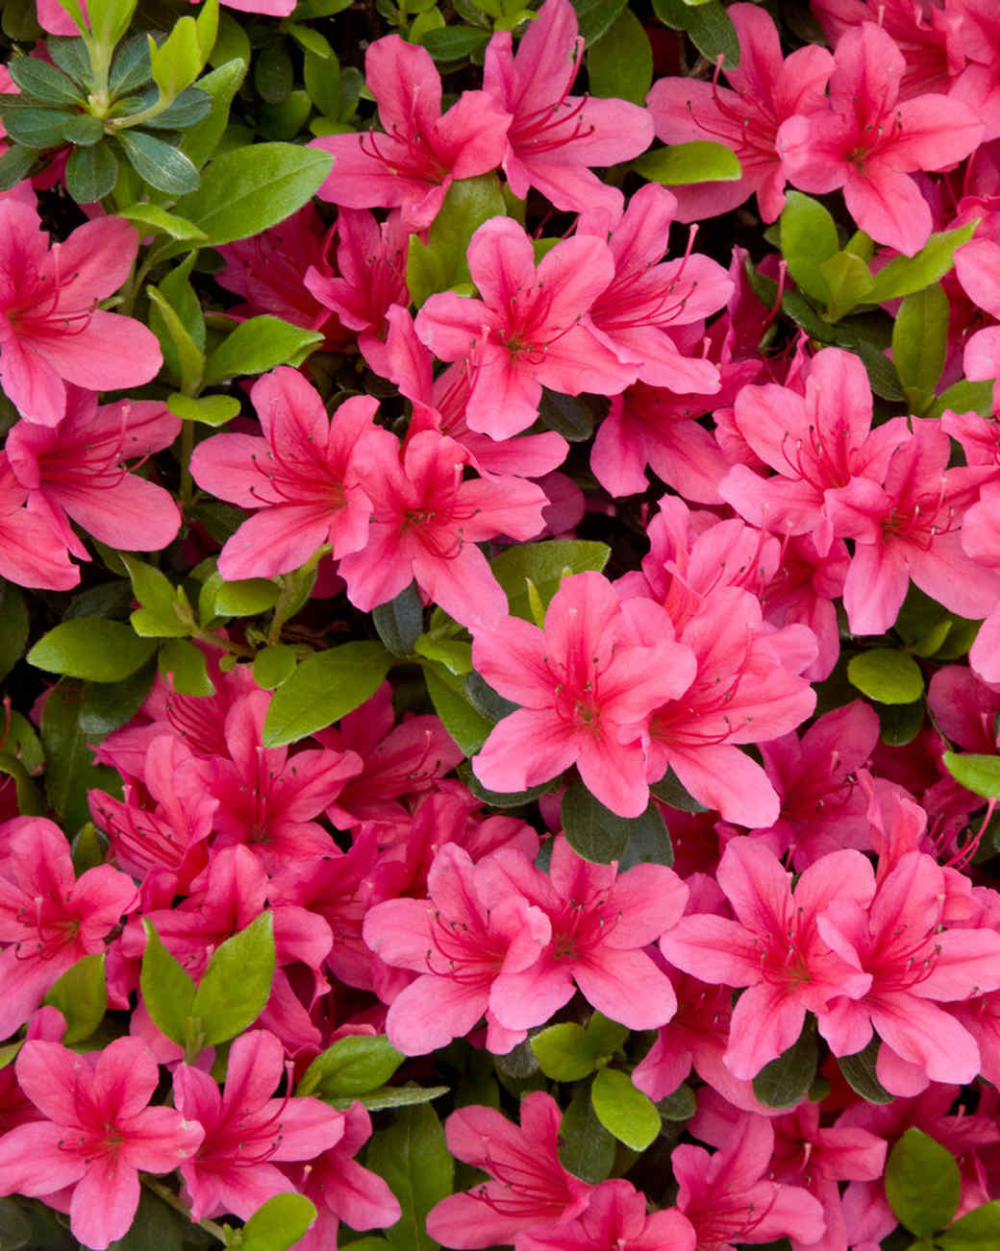 Your Ultimate Guide To Flowering Perennials Which Popular Plants Bloom When Azalea Flower Pink Azaleas Flowers Perennials